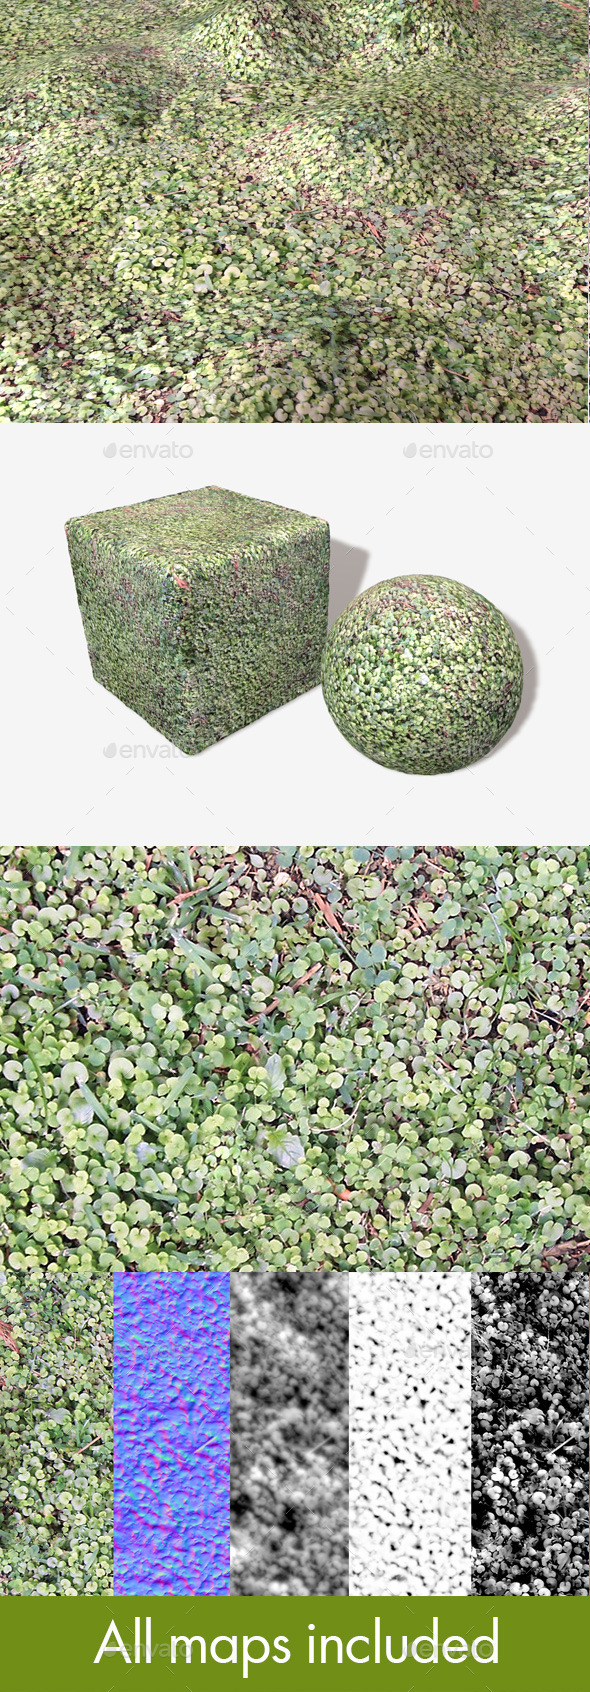 Clover Ground Seamless Texture - 3DOcean Item for Sale